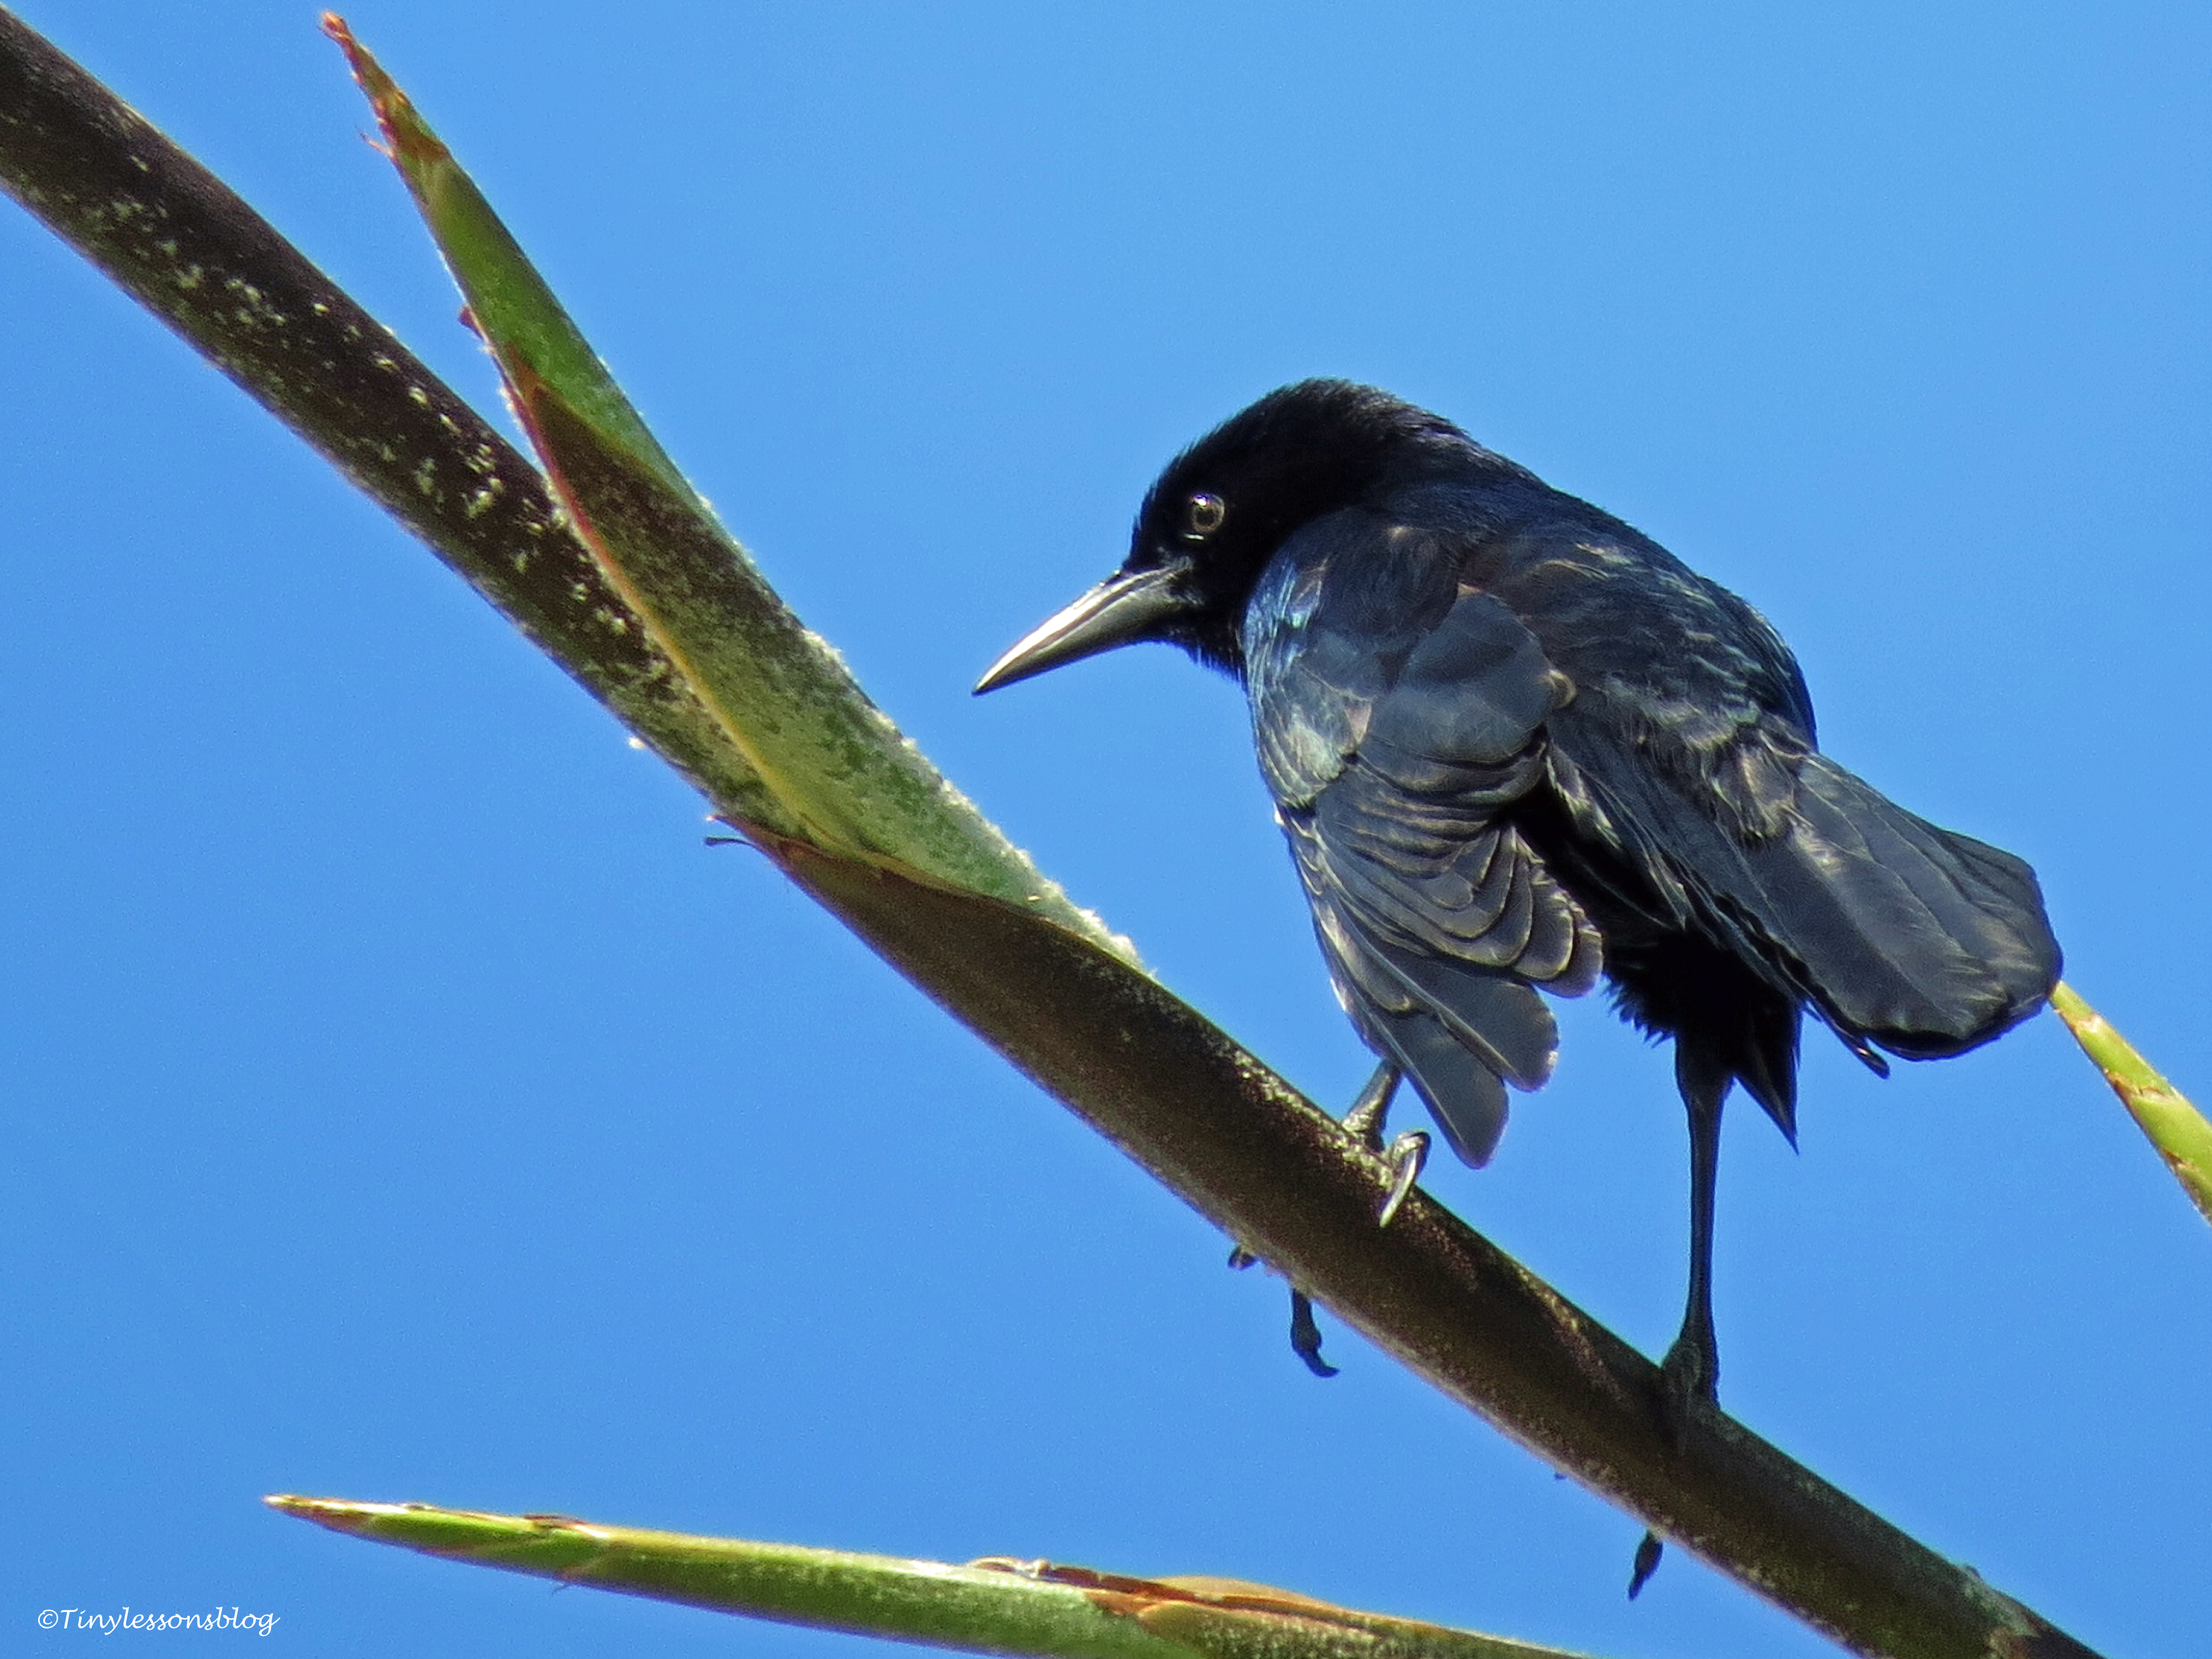 common grackle ud112